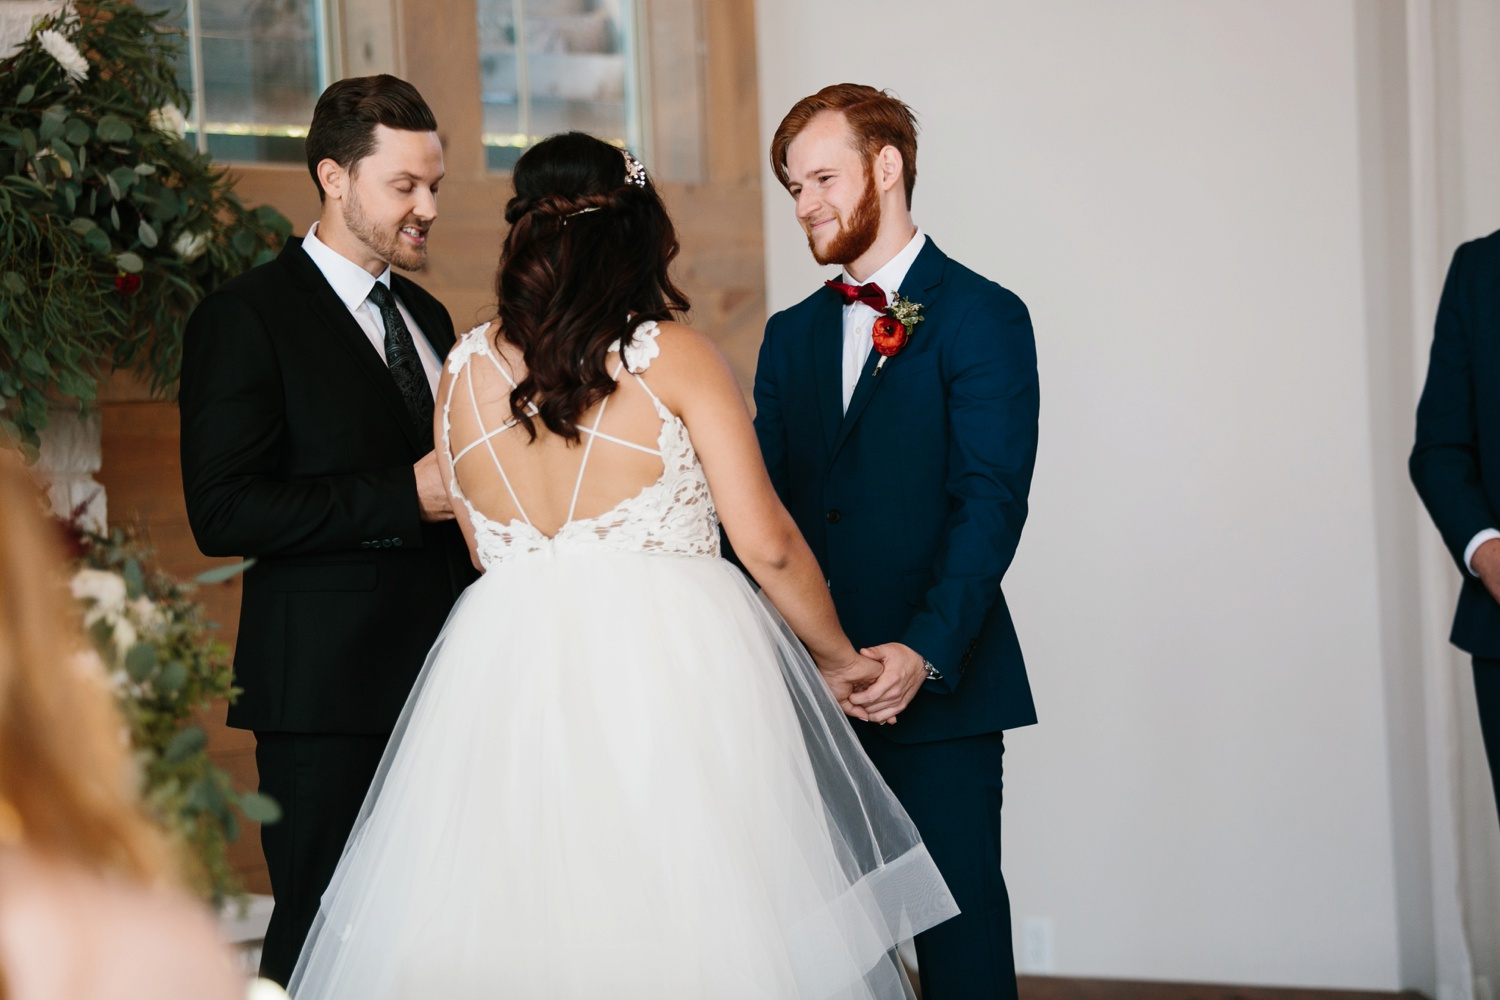 Grant + Lysette | a vibrant, deep burgundy and navy, and mixed metals wedding at Hidden Pines Chapel by North Texas Wedding Photographer Rachel Meagan Photography 085